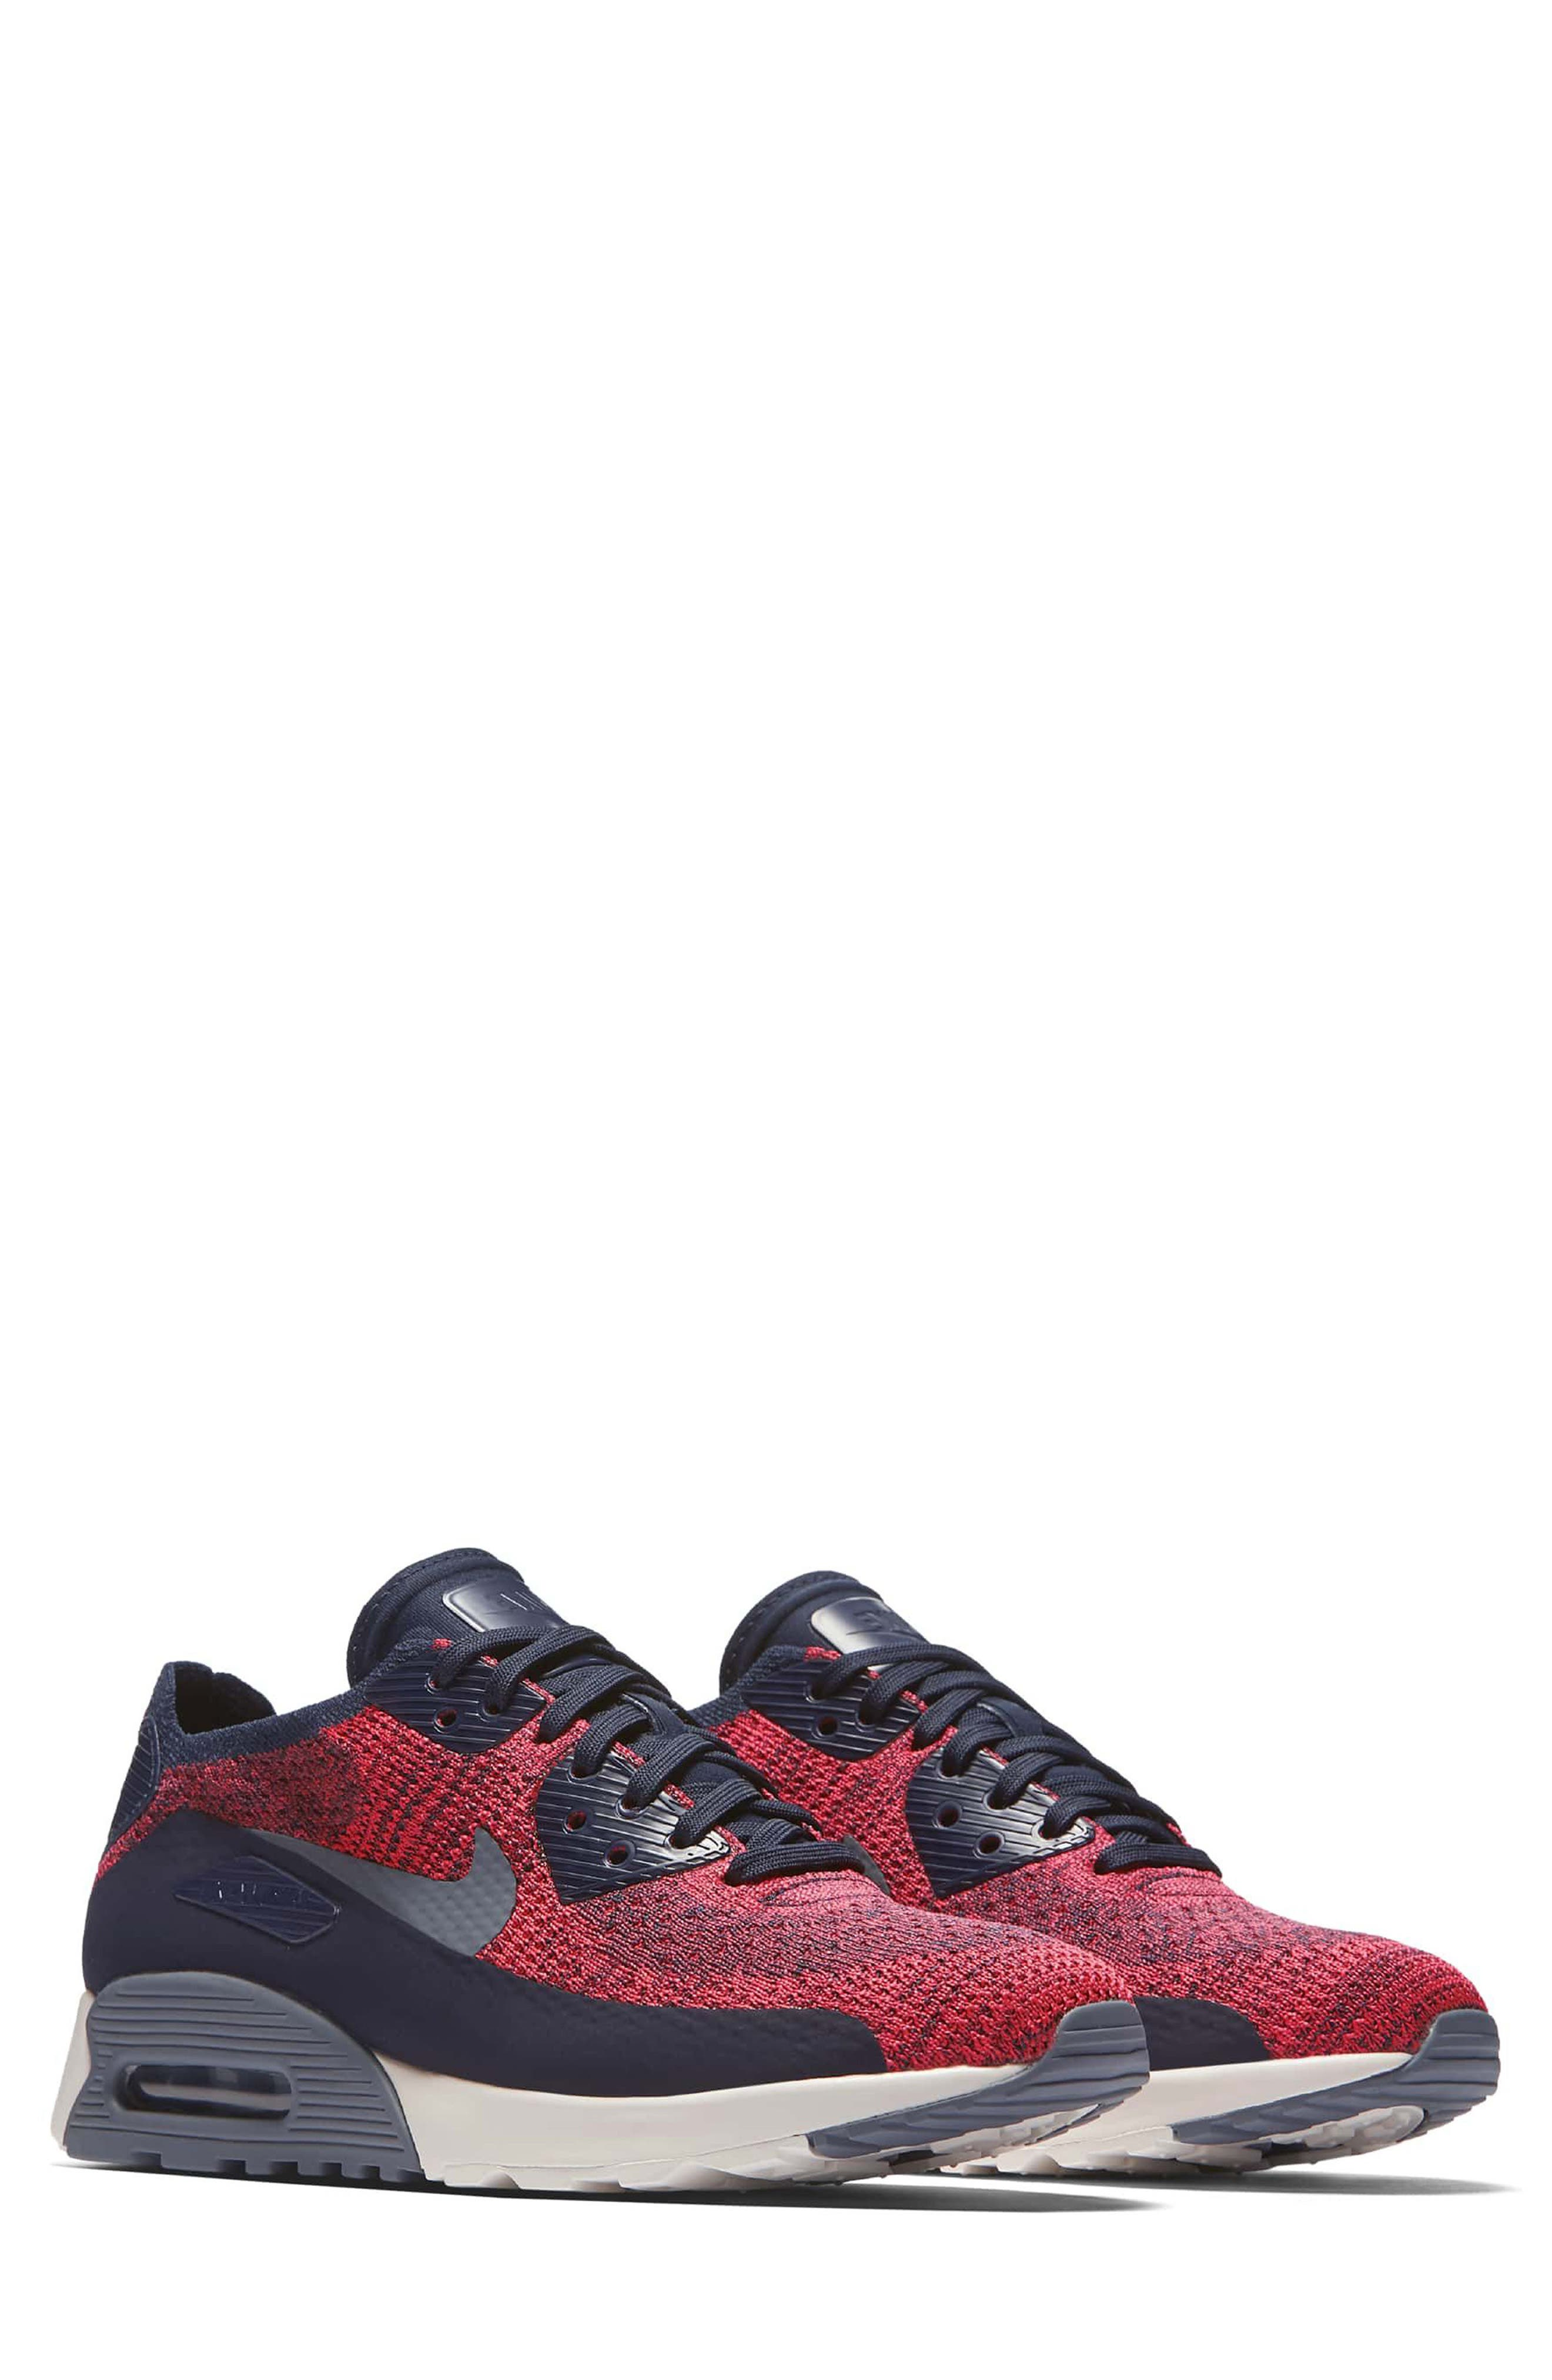 Alternate Image 1 Selected - Nike Air Max 90 Flyknit Ultra 2.0 Sneaker (Women)